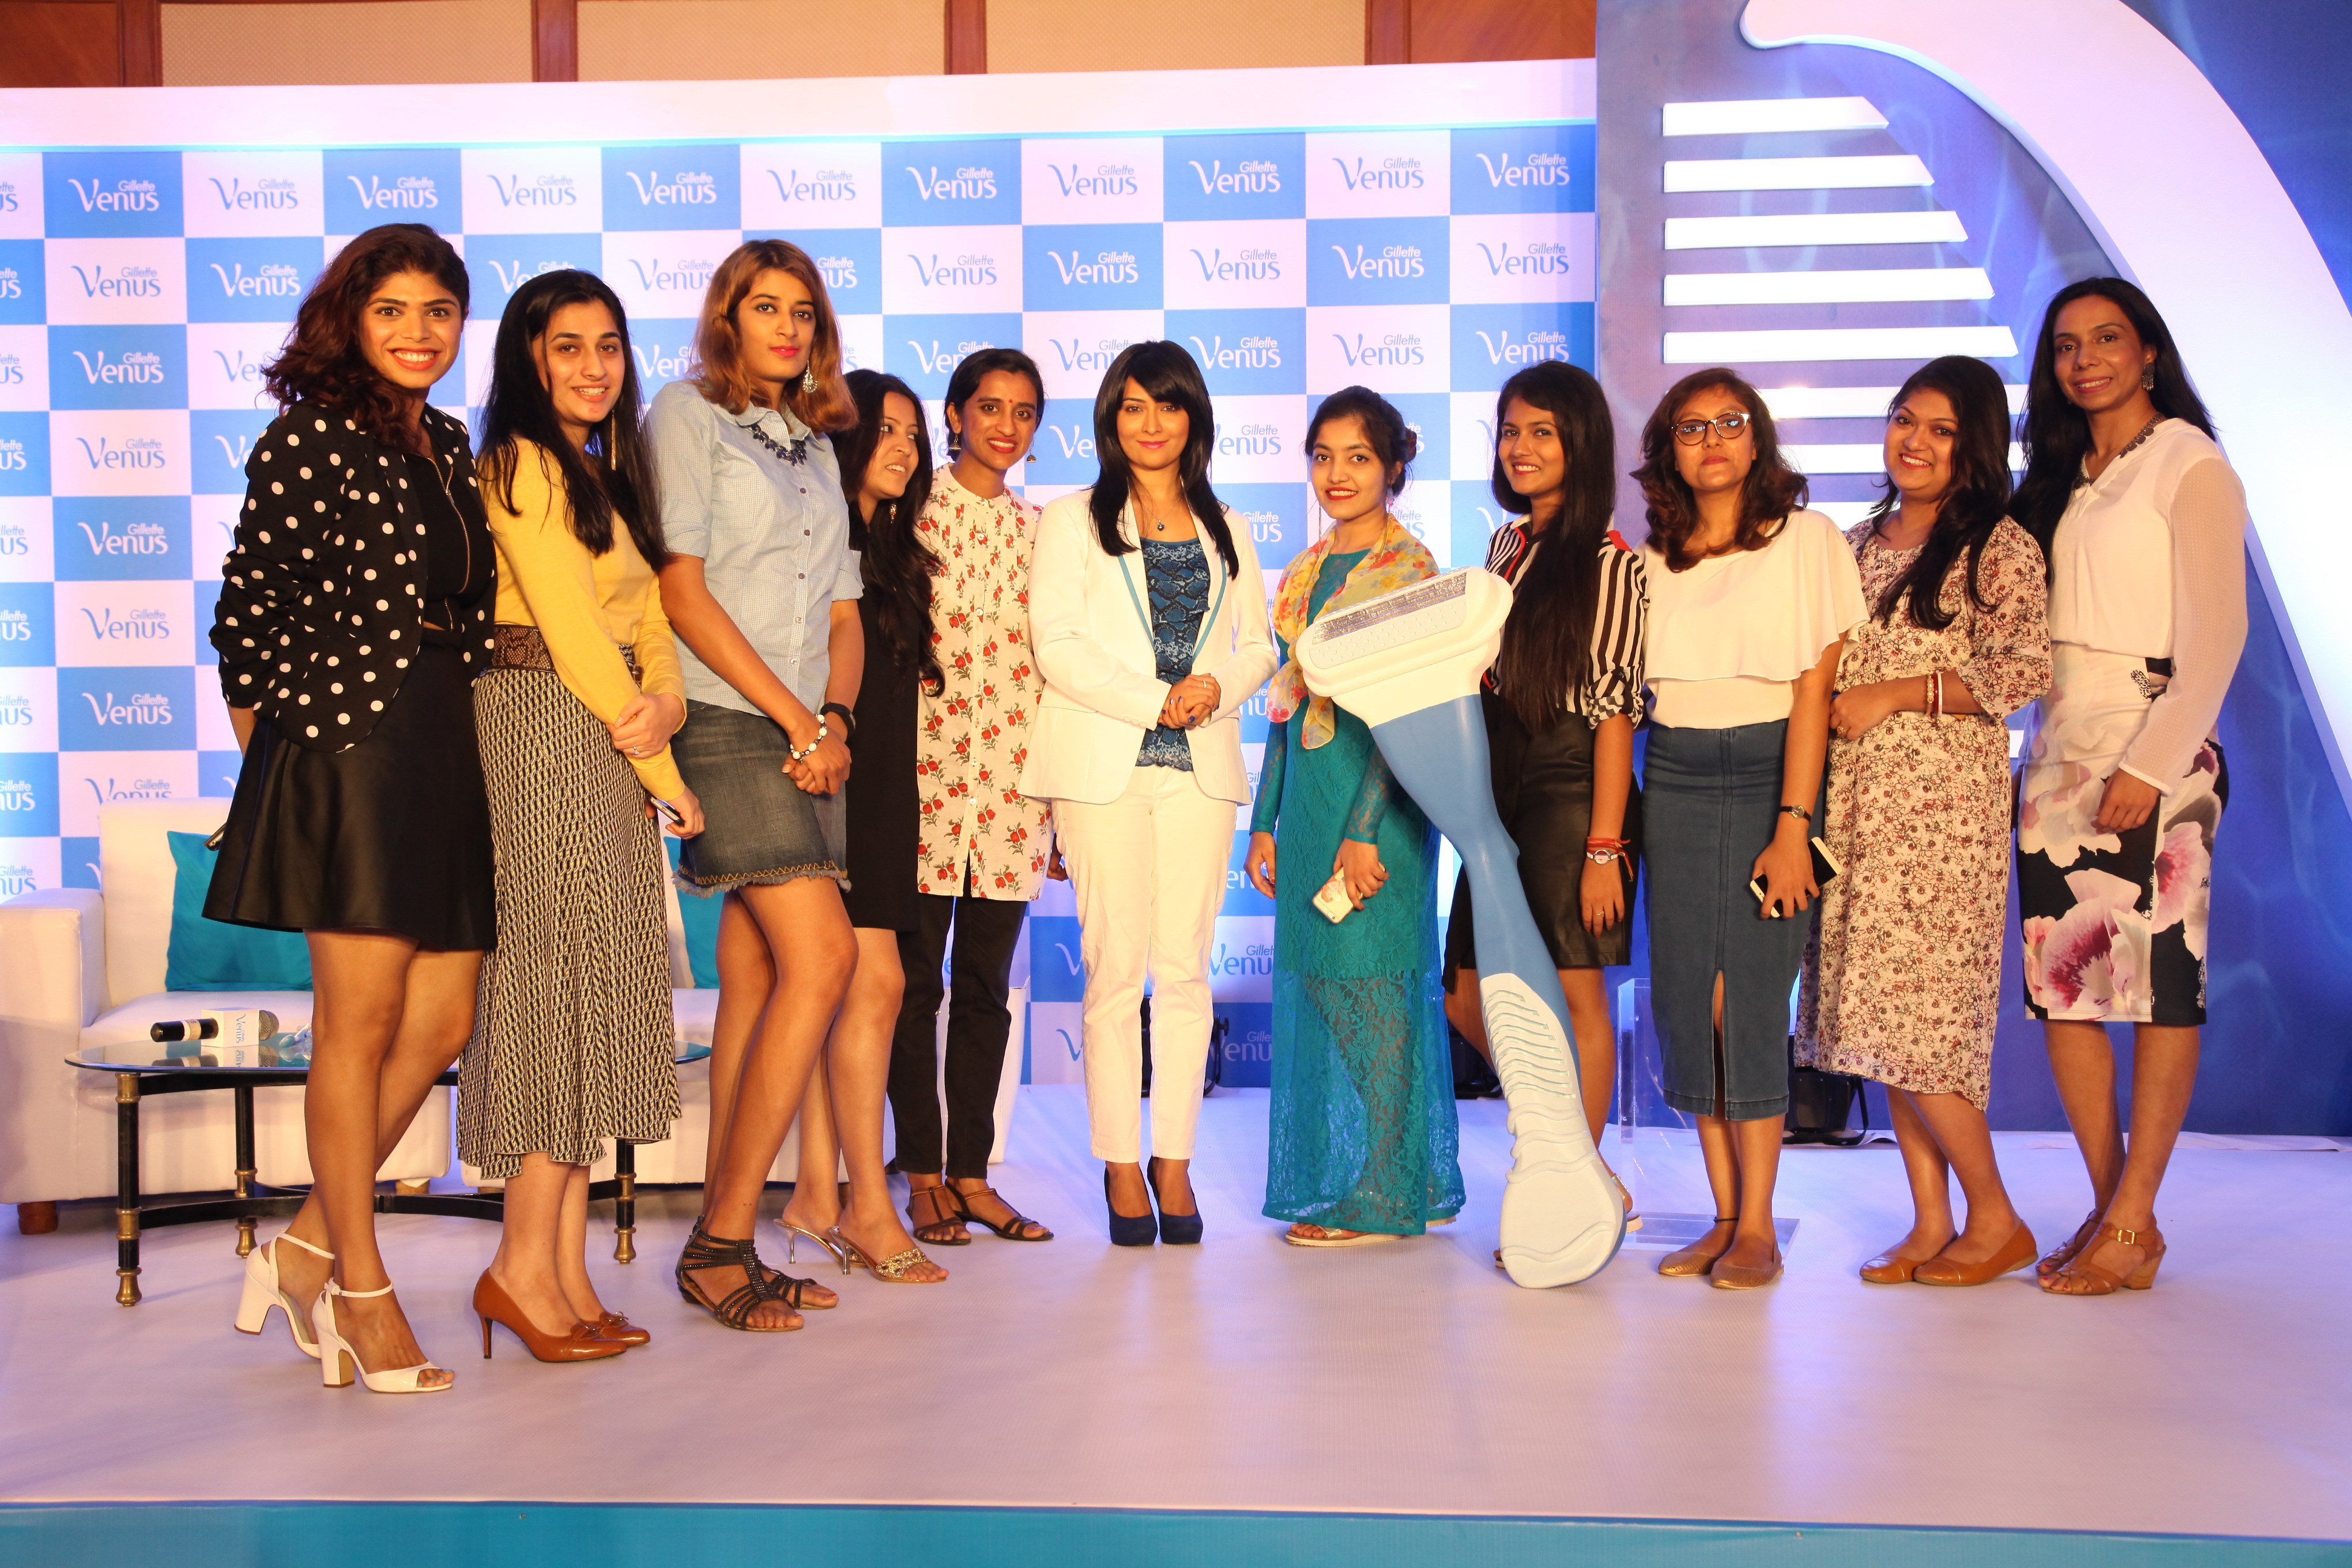 bangalore beauty bloggers with radhika pandit at gillette venus subscribe to smooth event bangalore